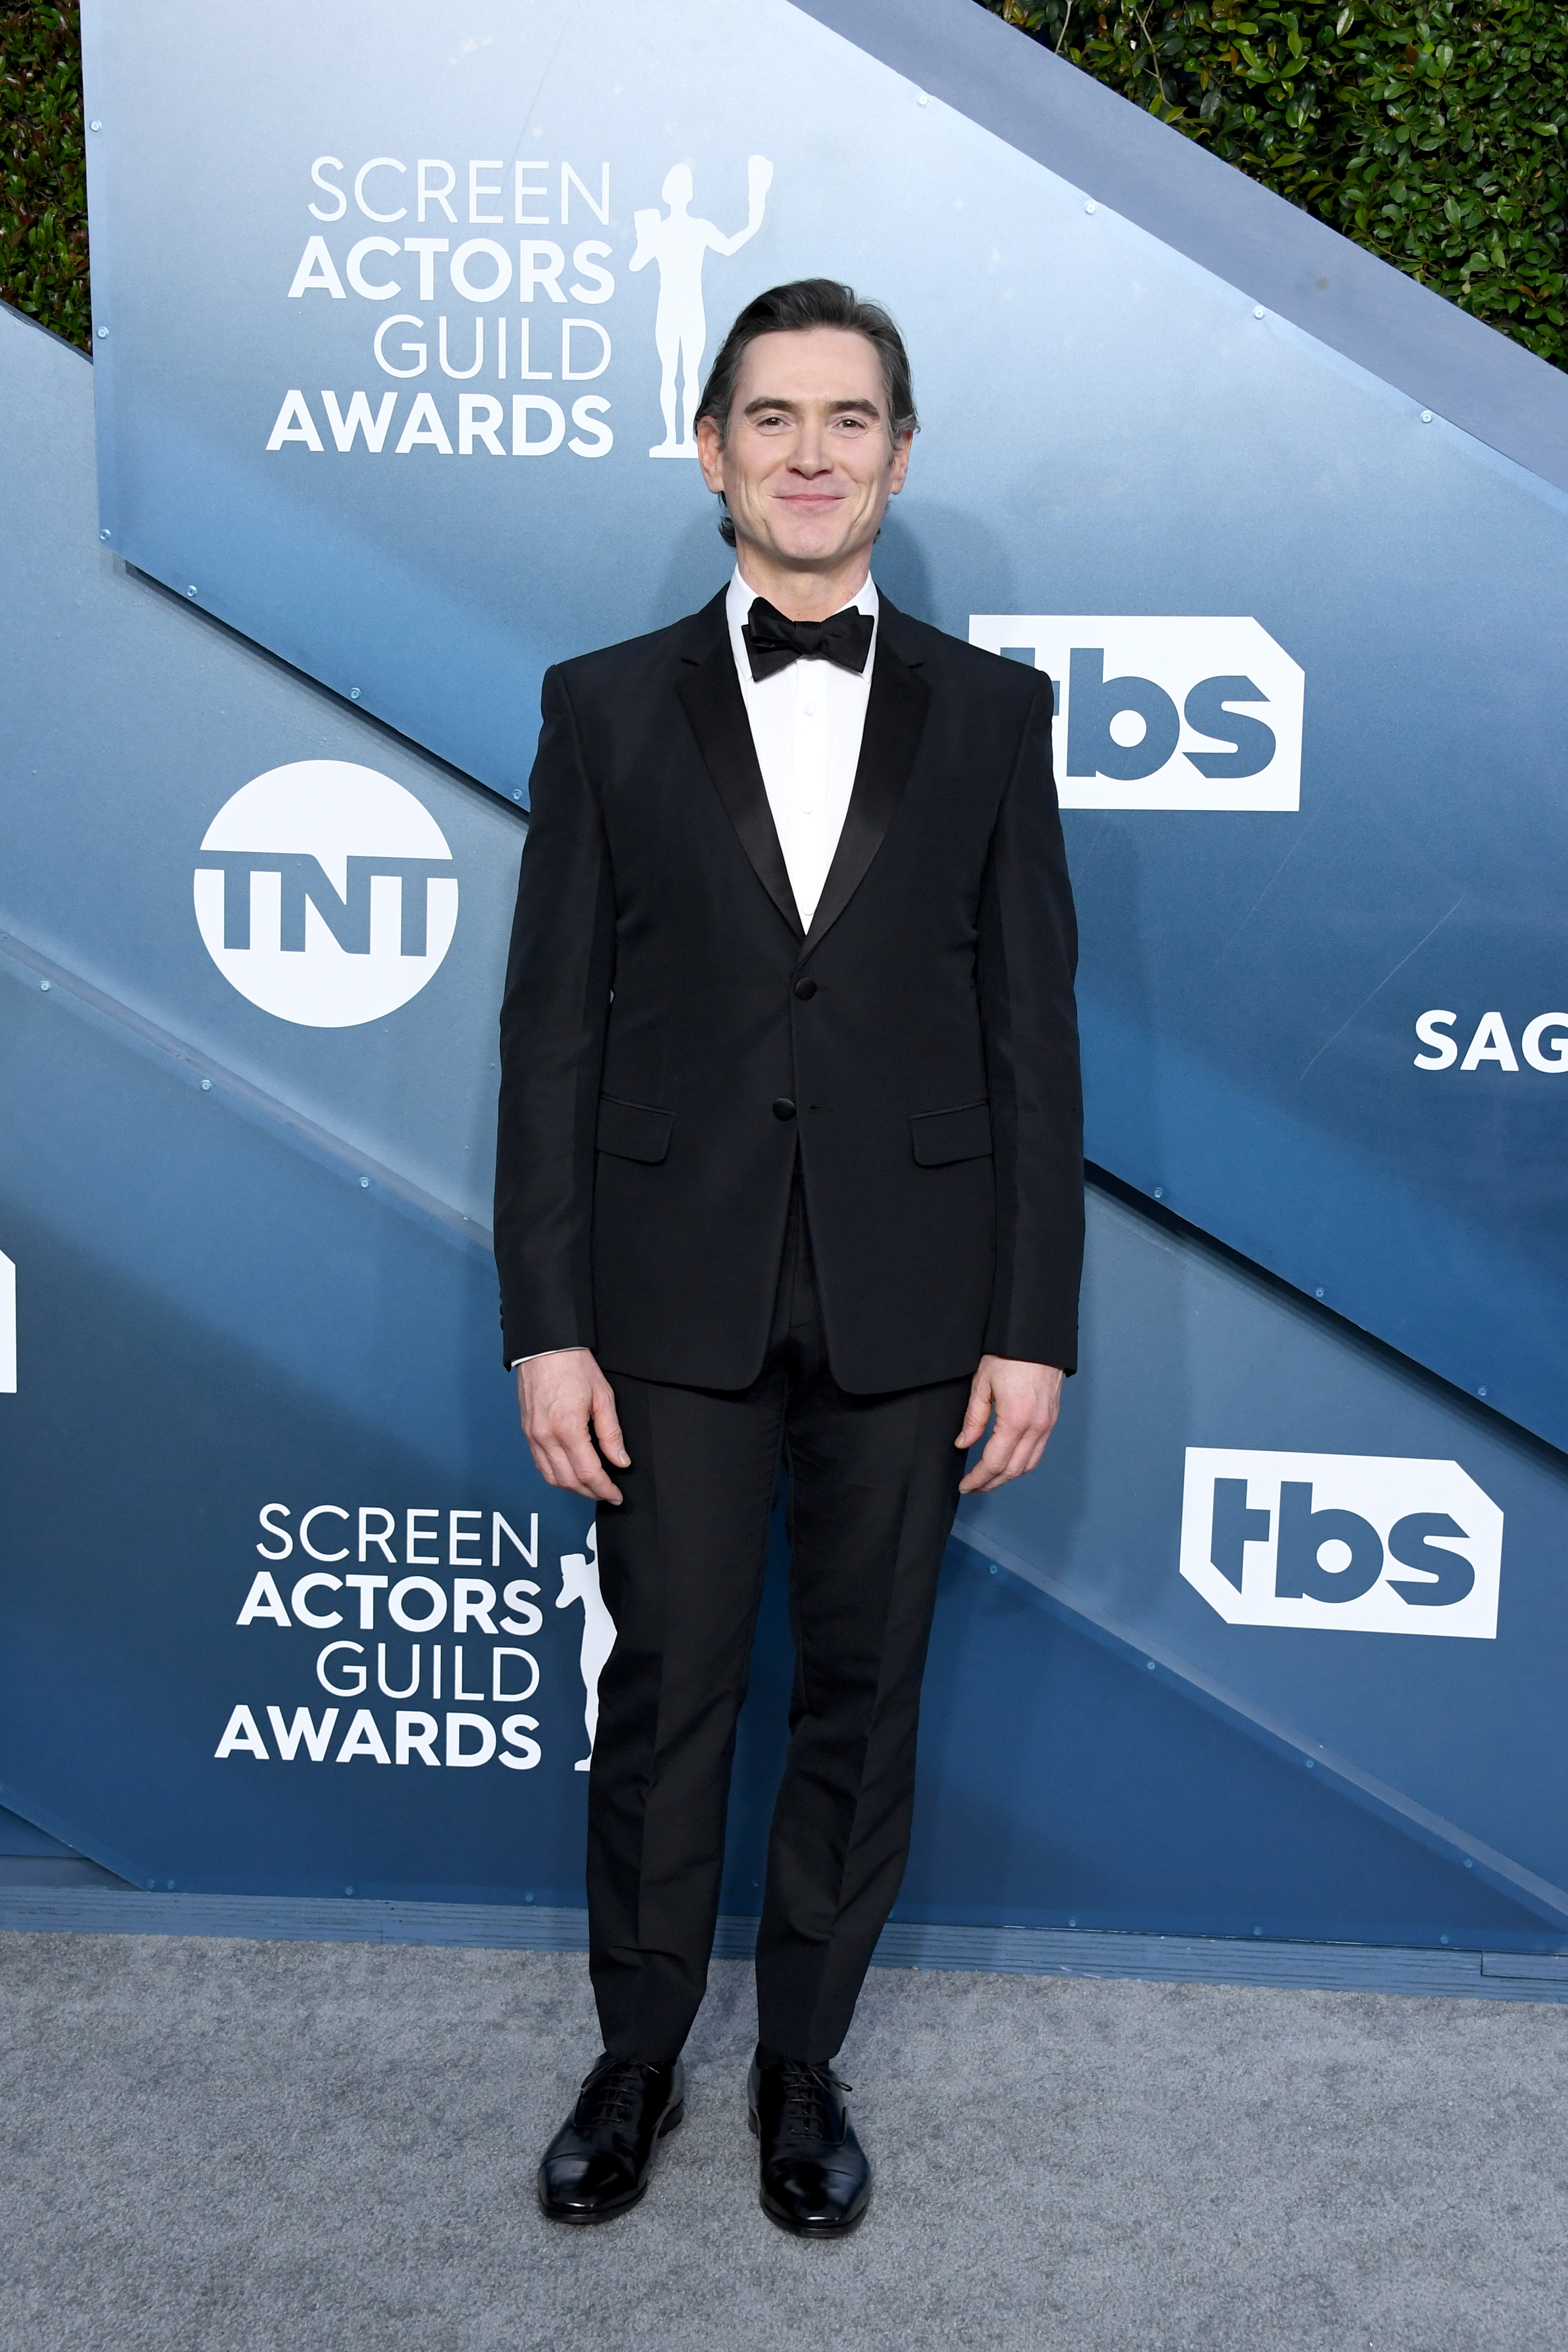 LOS ANGELES, CALIFORNIA - JANUARY 19: Billy Crudup attends the 26th Annual Screen ActorsGuild Awards at The Shrine Auditorium on January 19, 2020 in Los Angeles, California. (Photo by Jon Kopaloff/Getty Images)